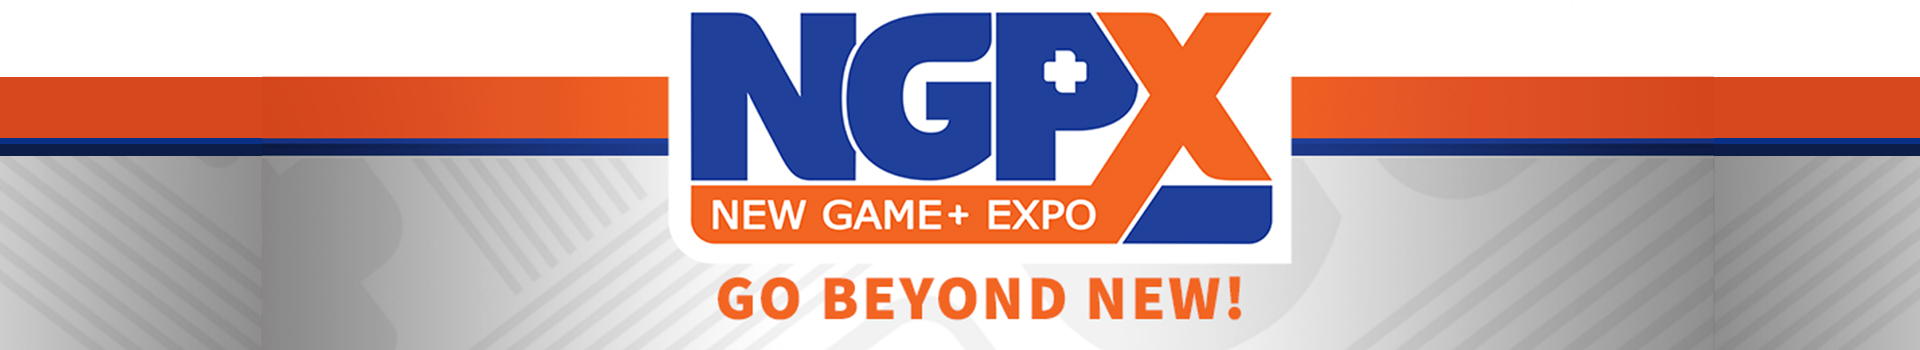 New Game+Expo 2020骞寸�瑰��